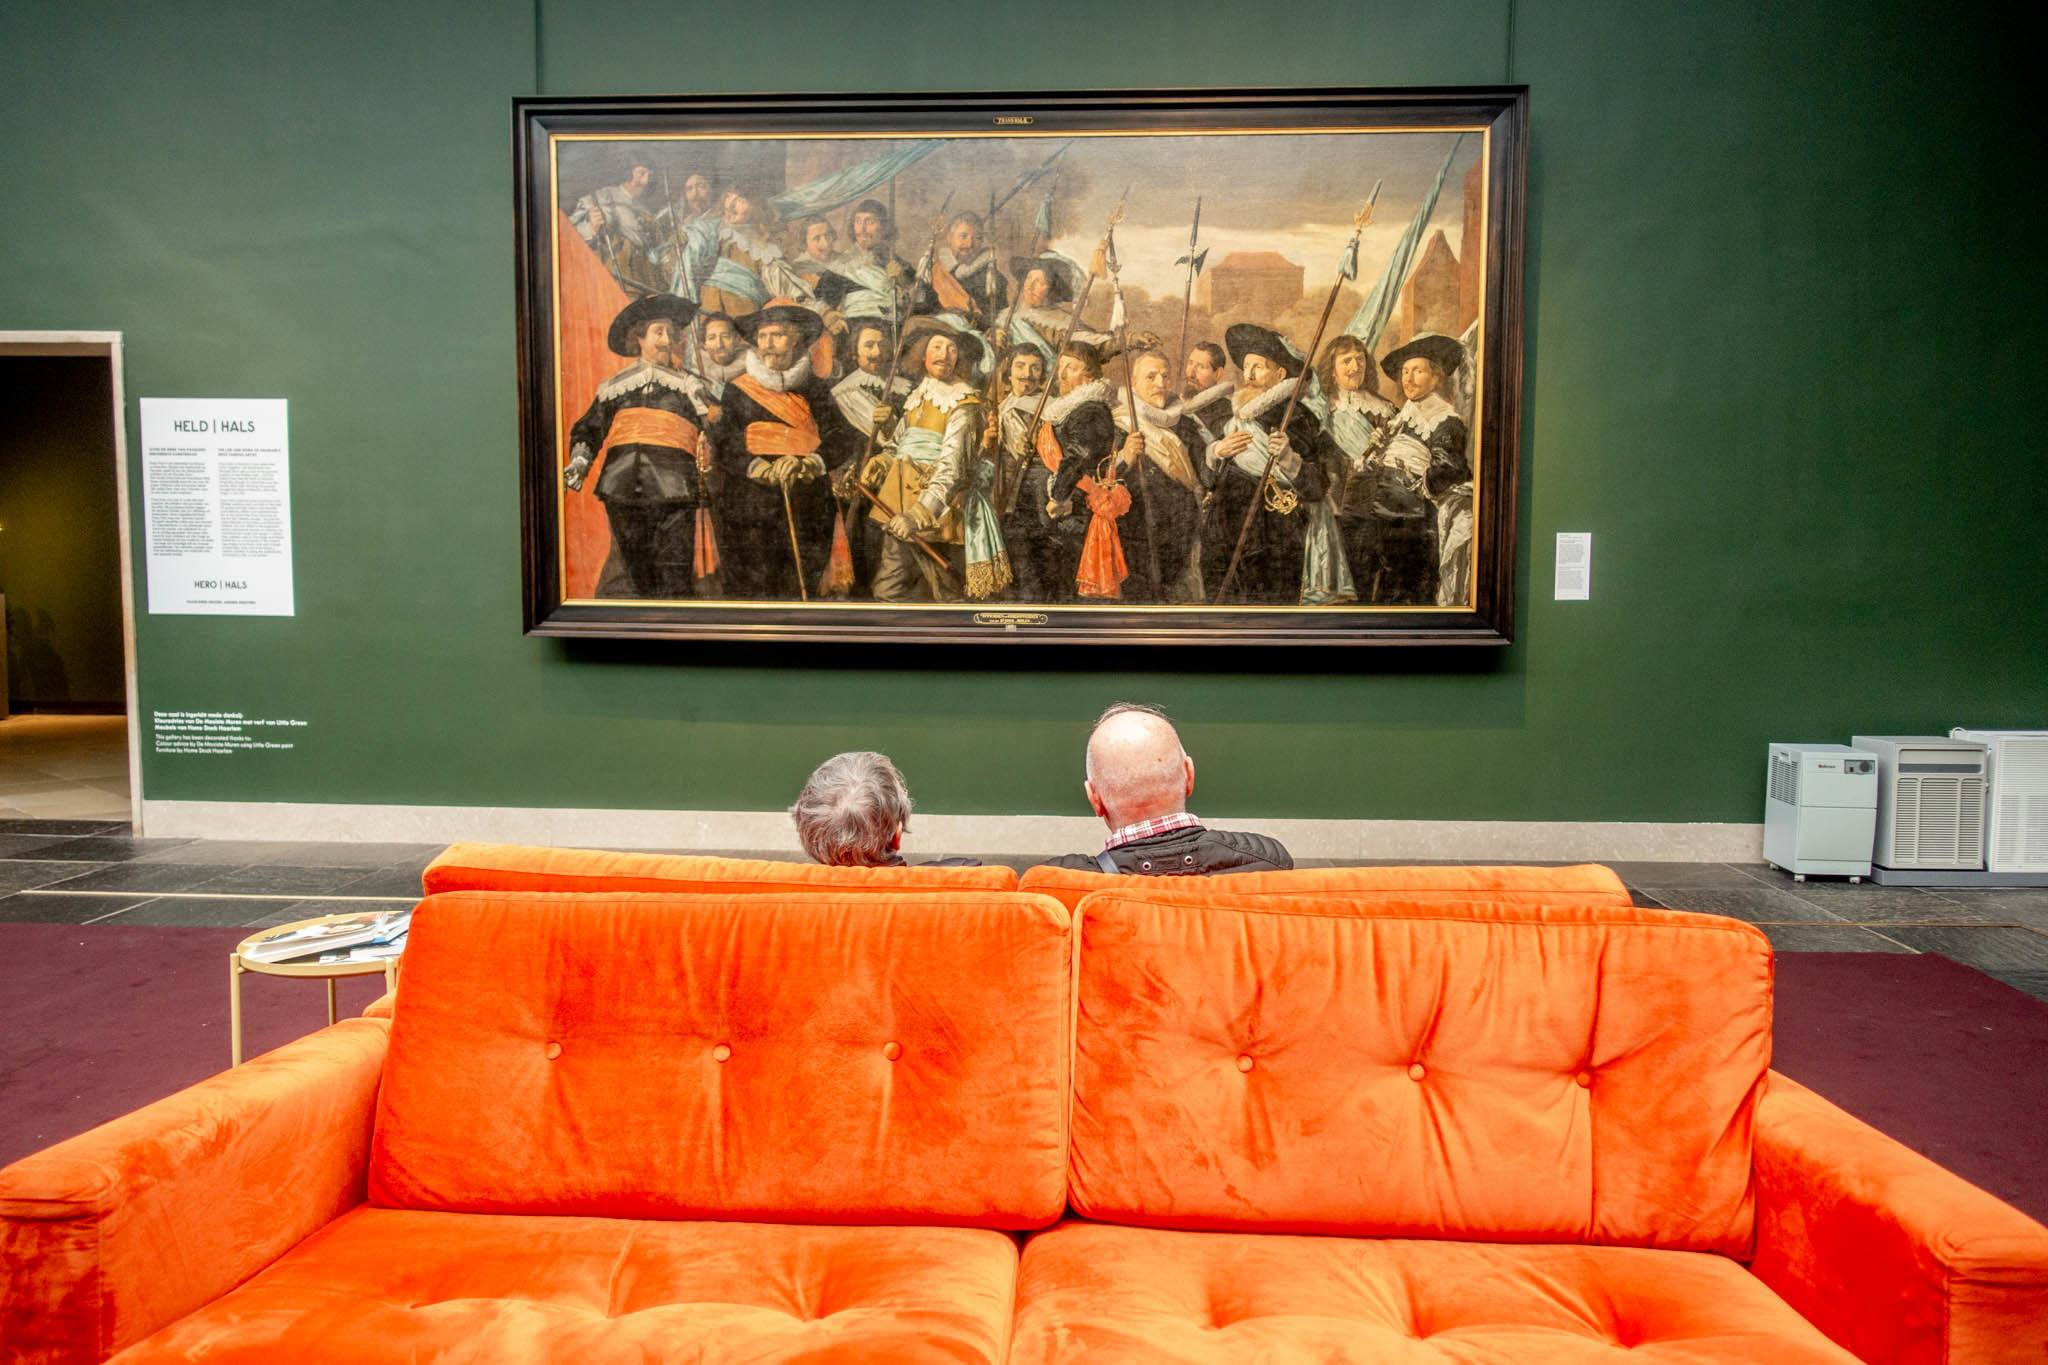 Couple seated on orange couch looking at artwork on green wall at Frans Hals Museum